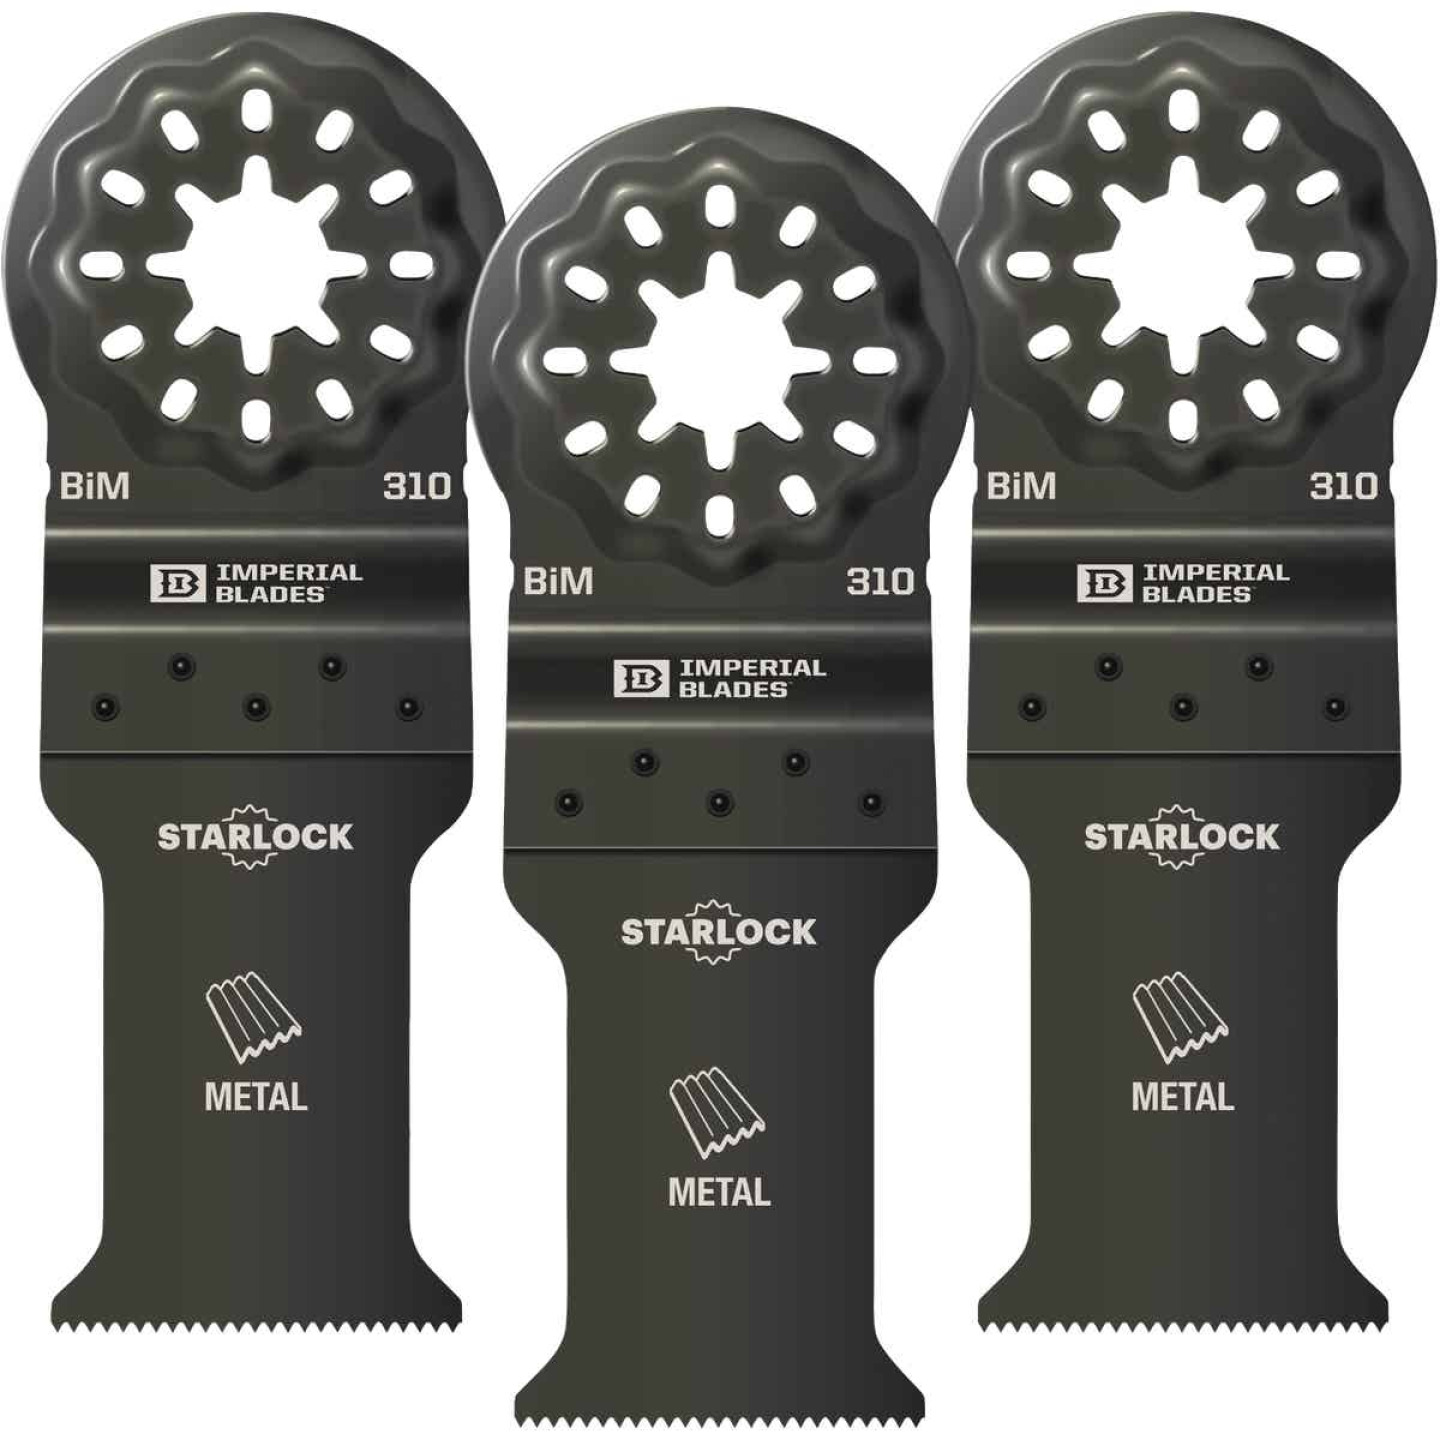 Imperial Blades Starlock 1-1/5 In. 21 TPI Metal Oscillating Blade (3-Pack) Image 1